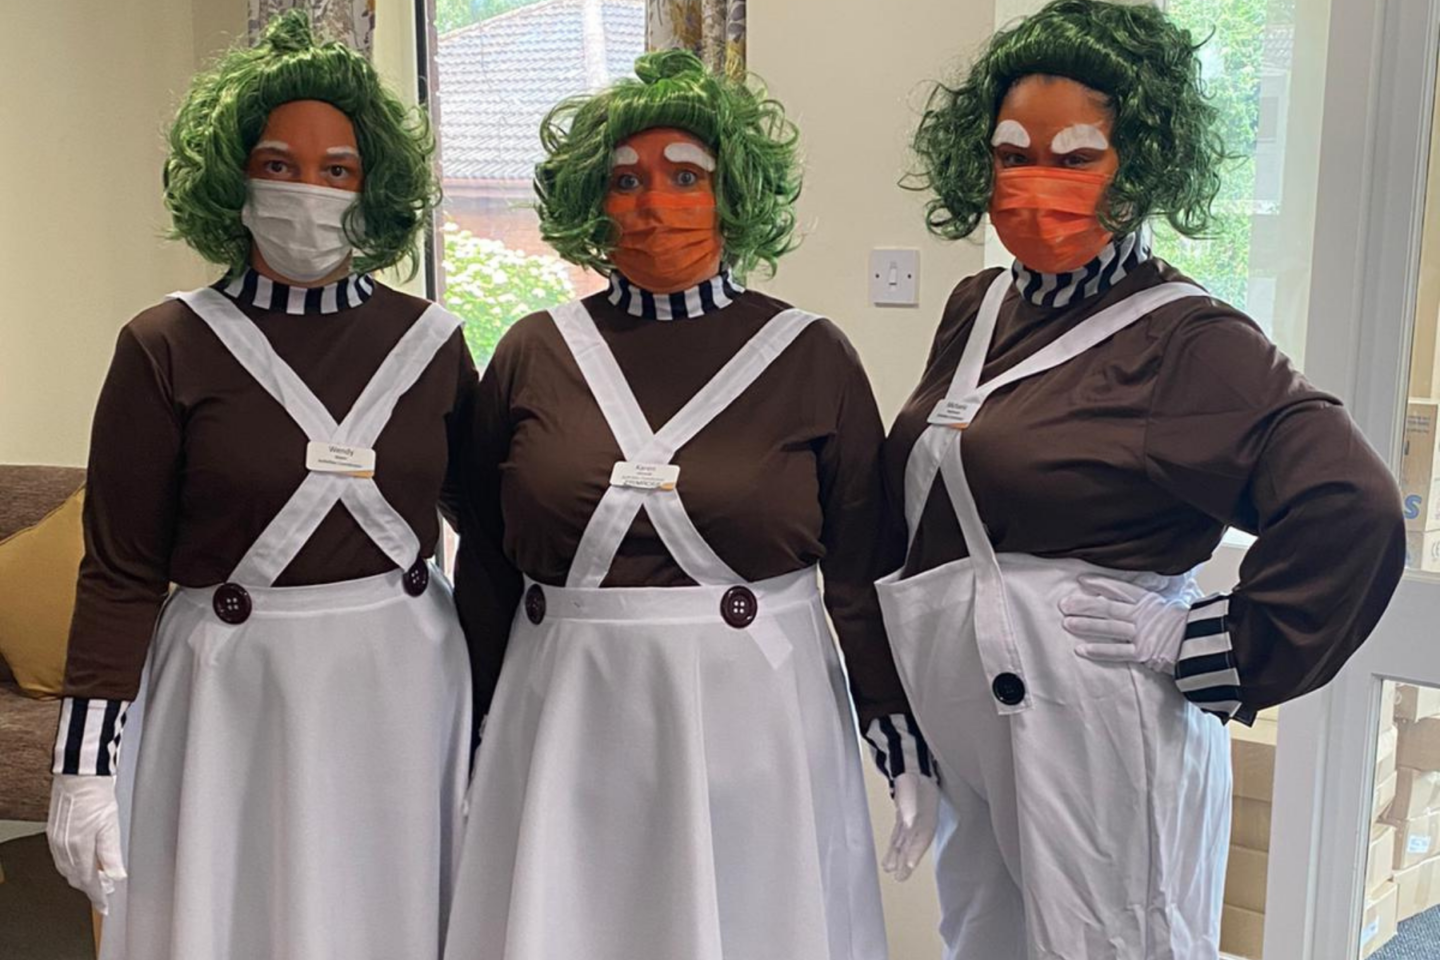 Netherton Green Gets Magical Oompa Loompa Visit On World Chocolate Day